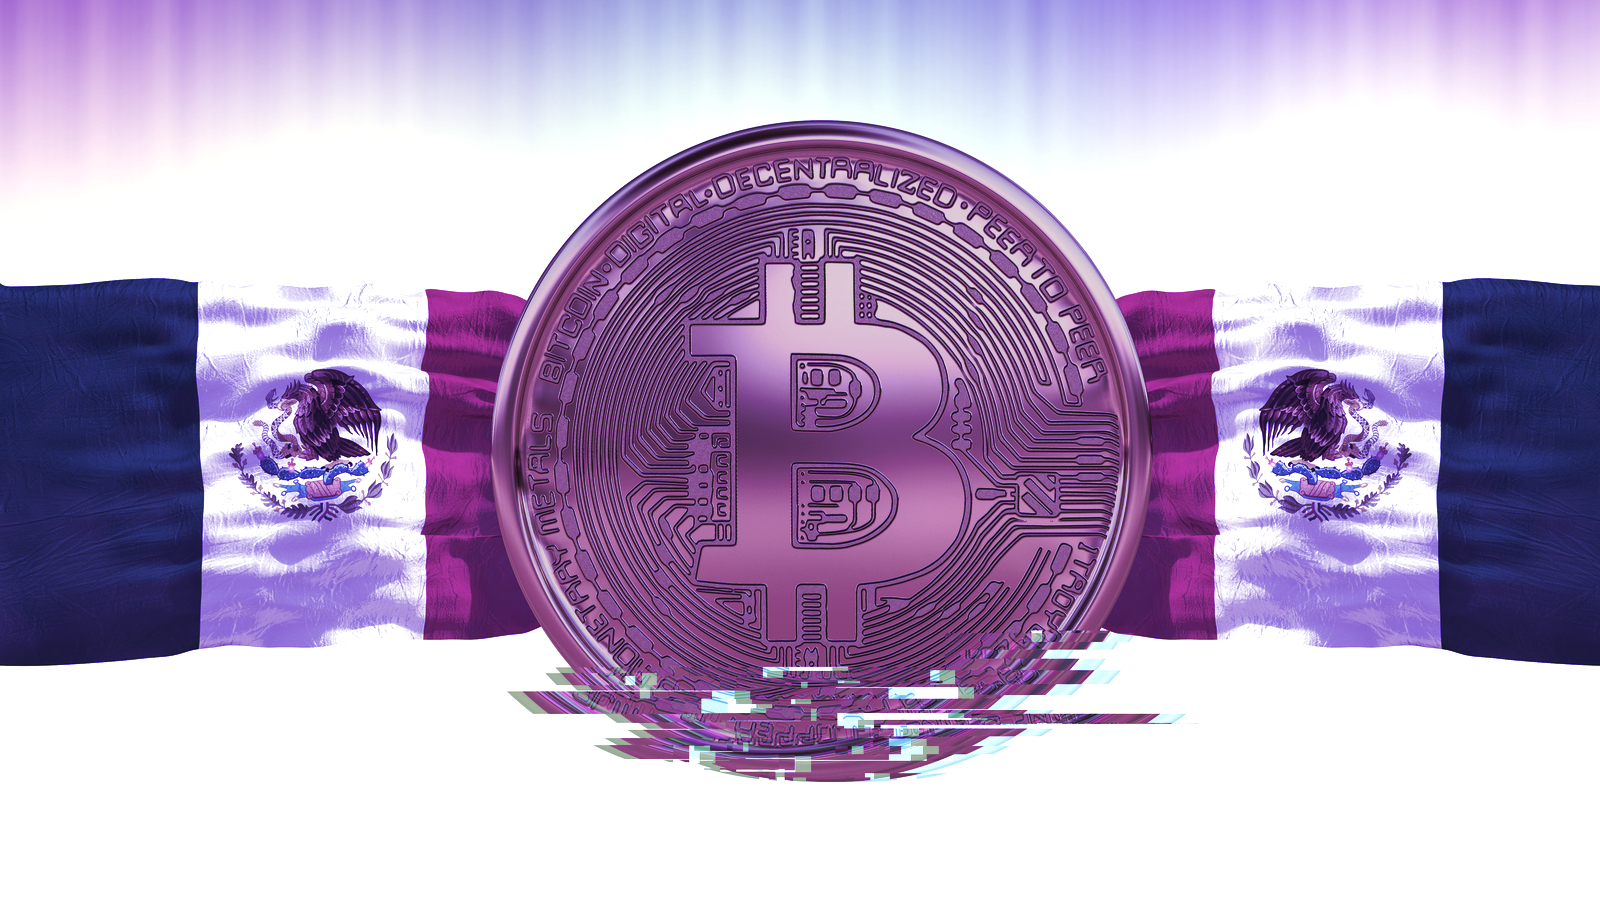 Mexico's Financial Authorities Pour Cold Water on Billionaire's Bitcoin Bank Plan